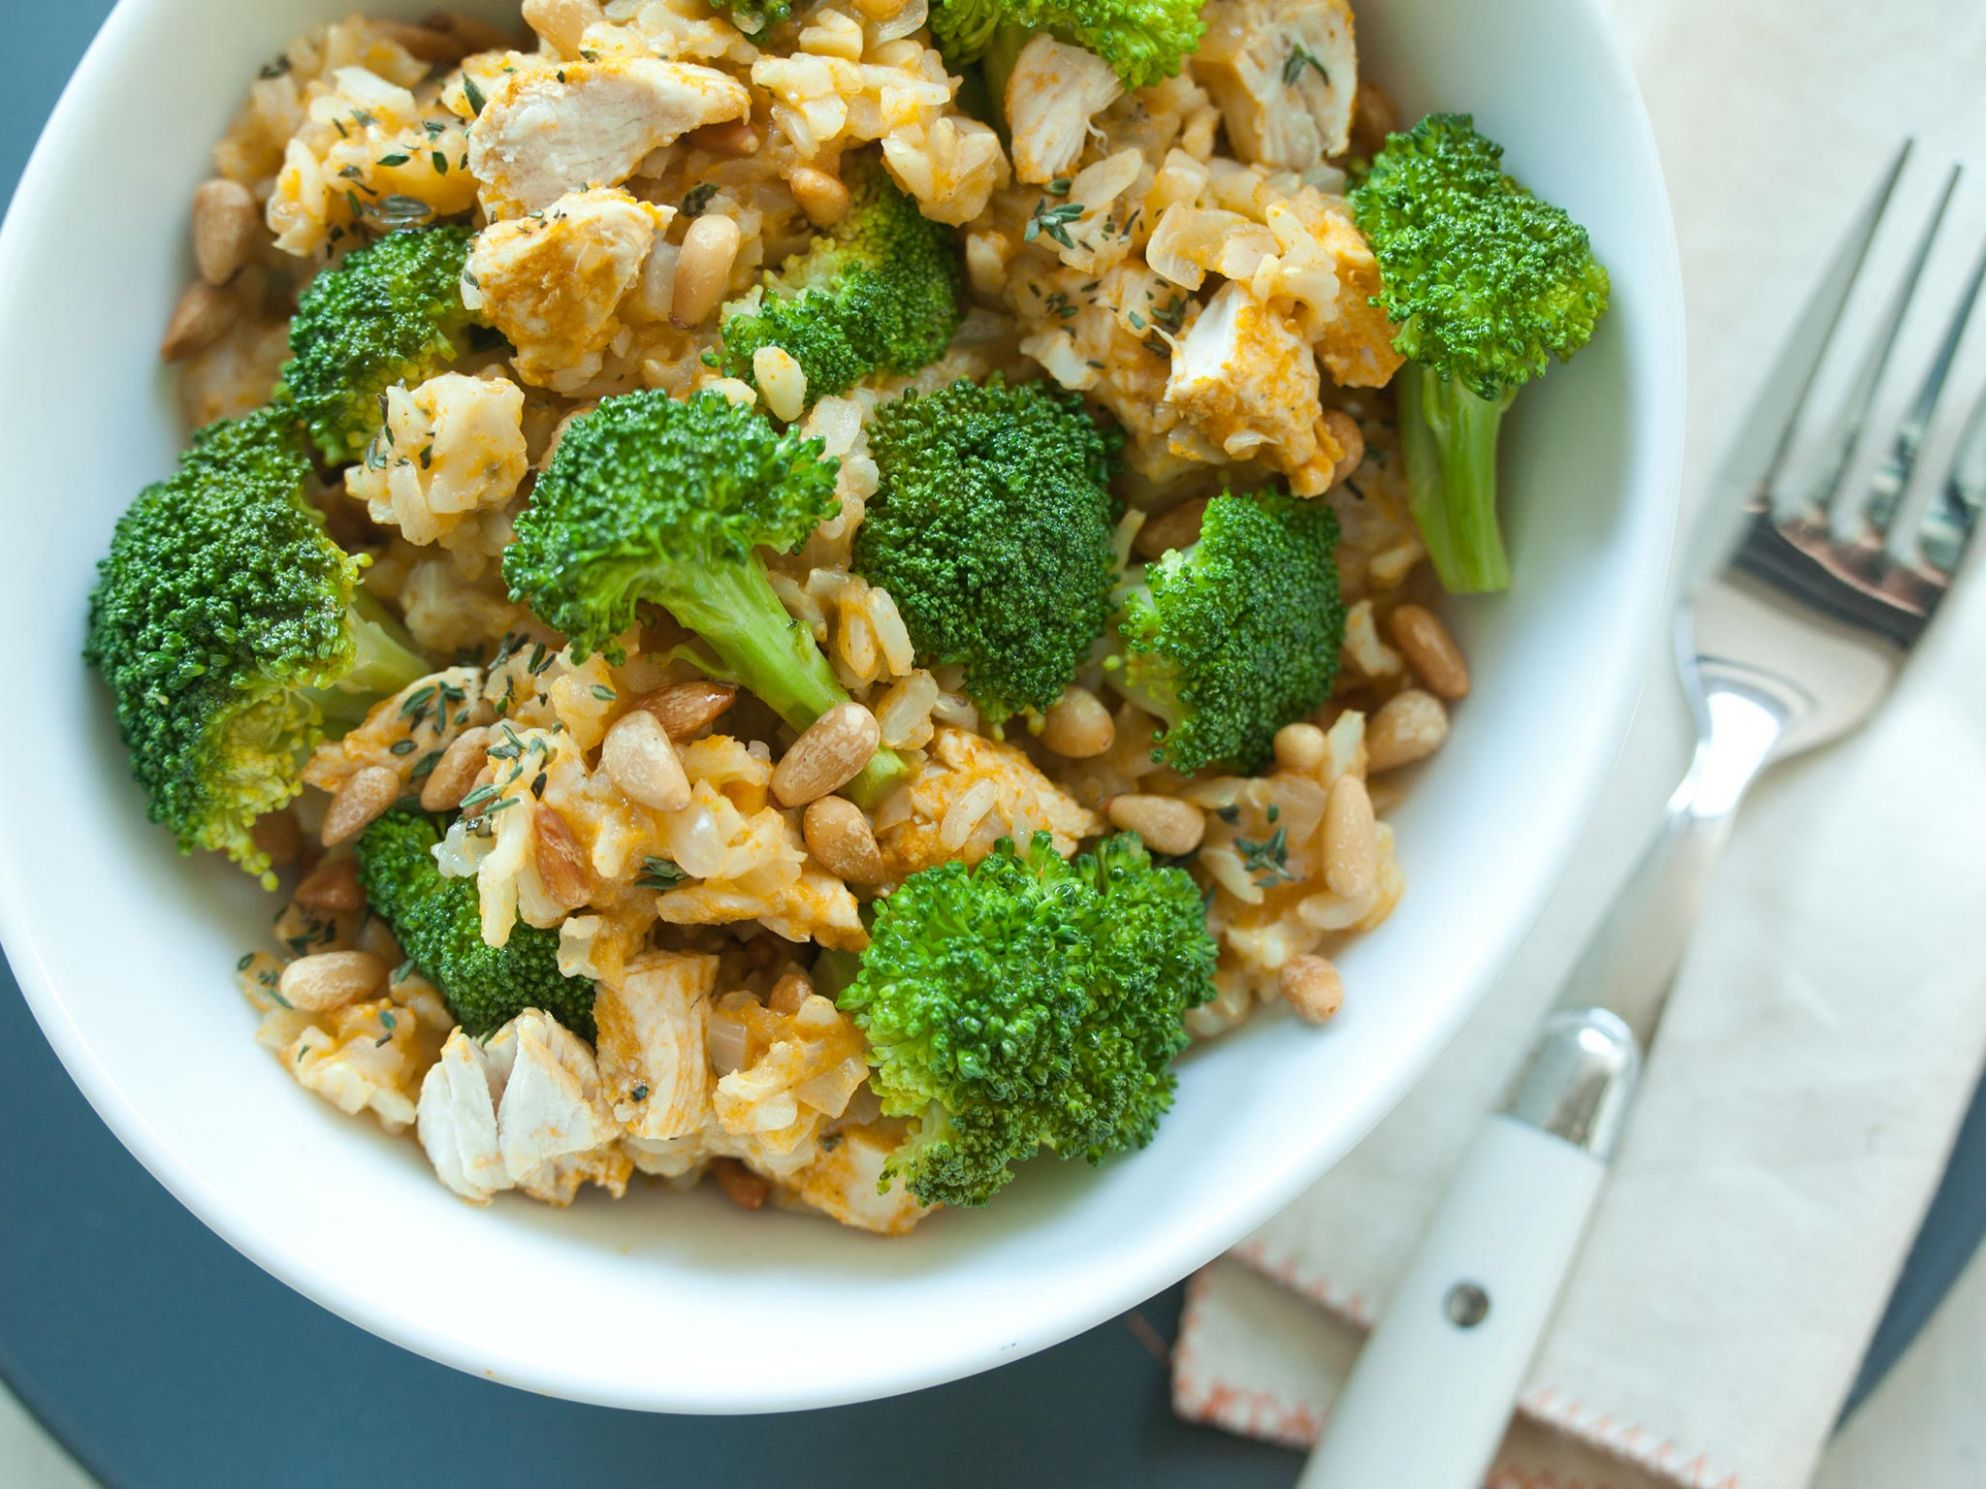 Brown Rice with Chicken and Broccoli - Recipes Chicken Rice Broccoli